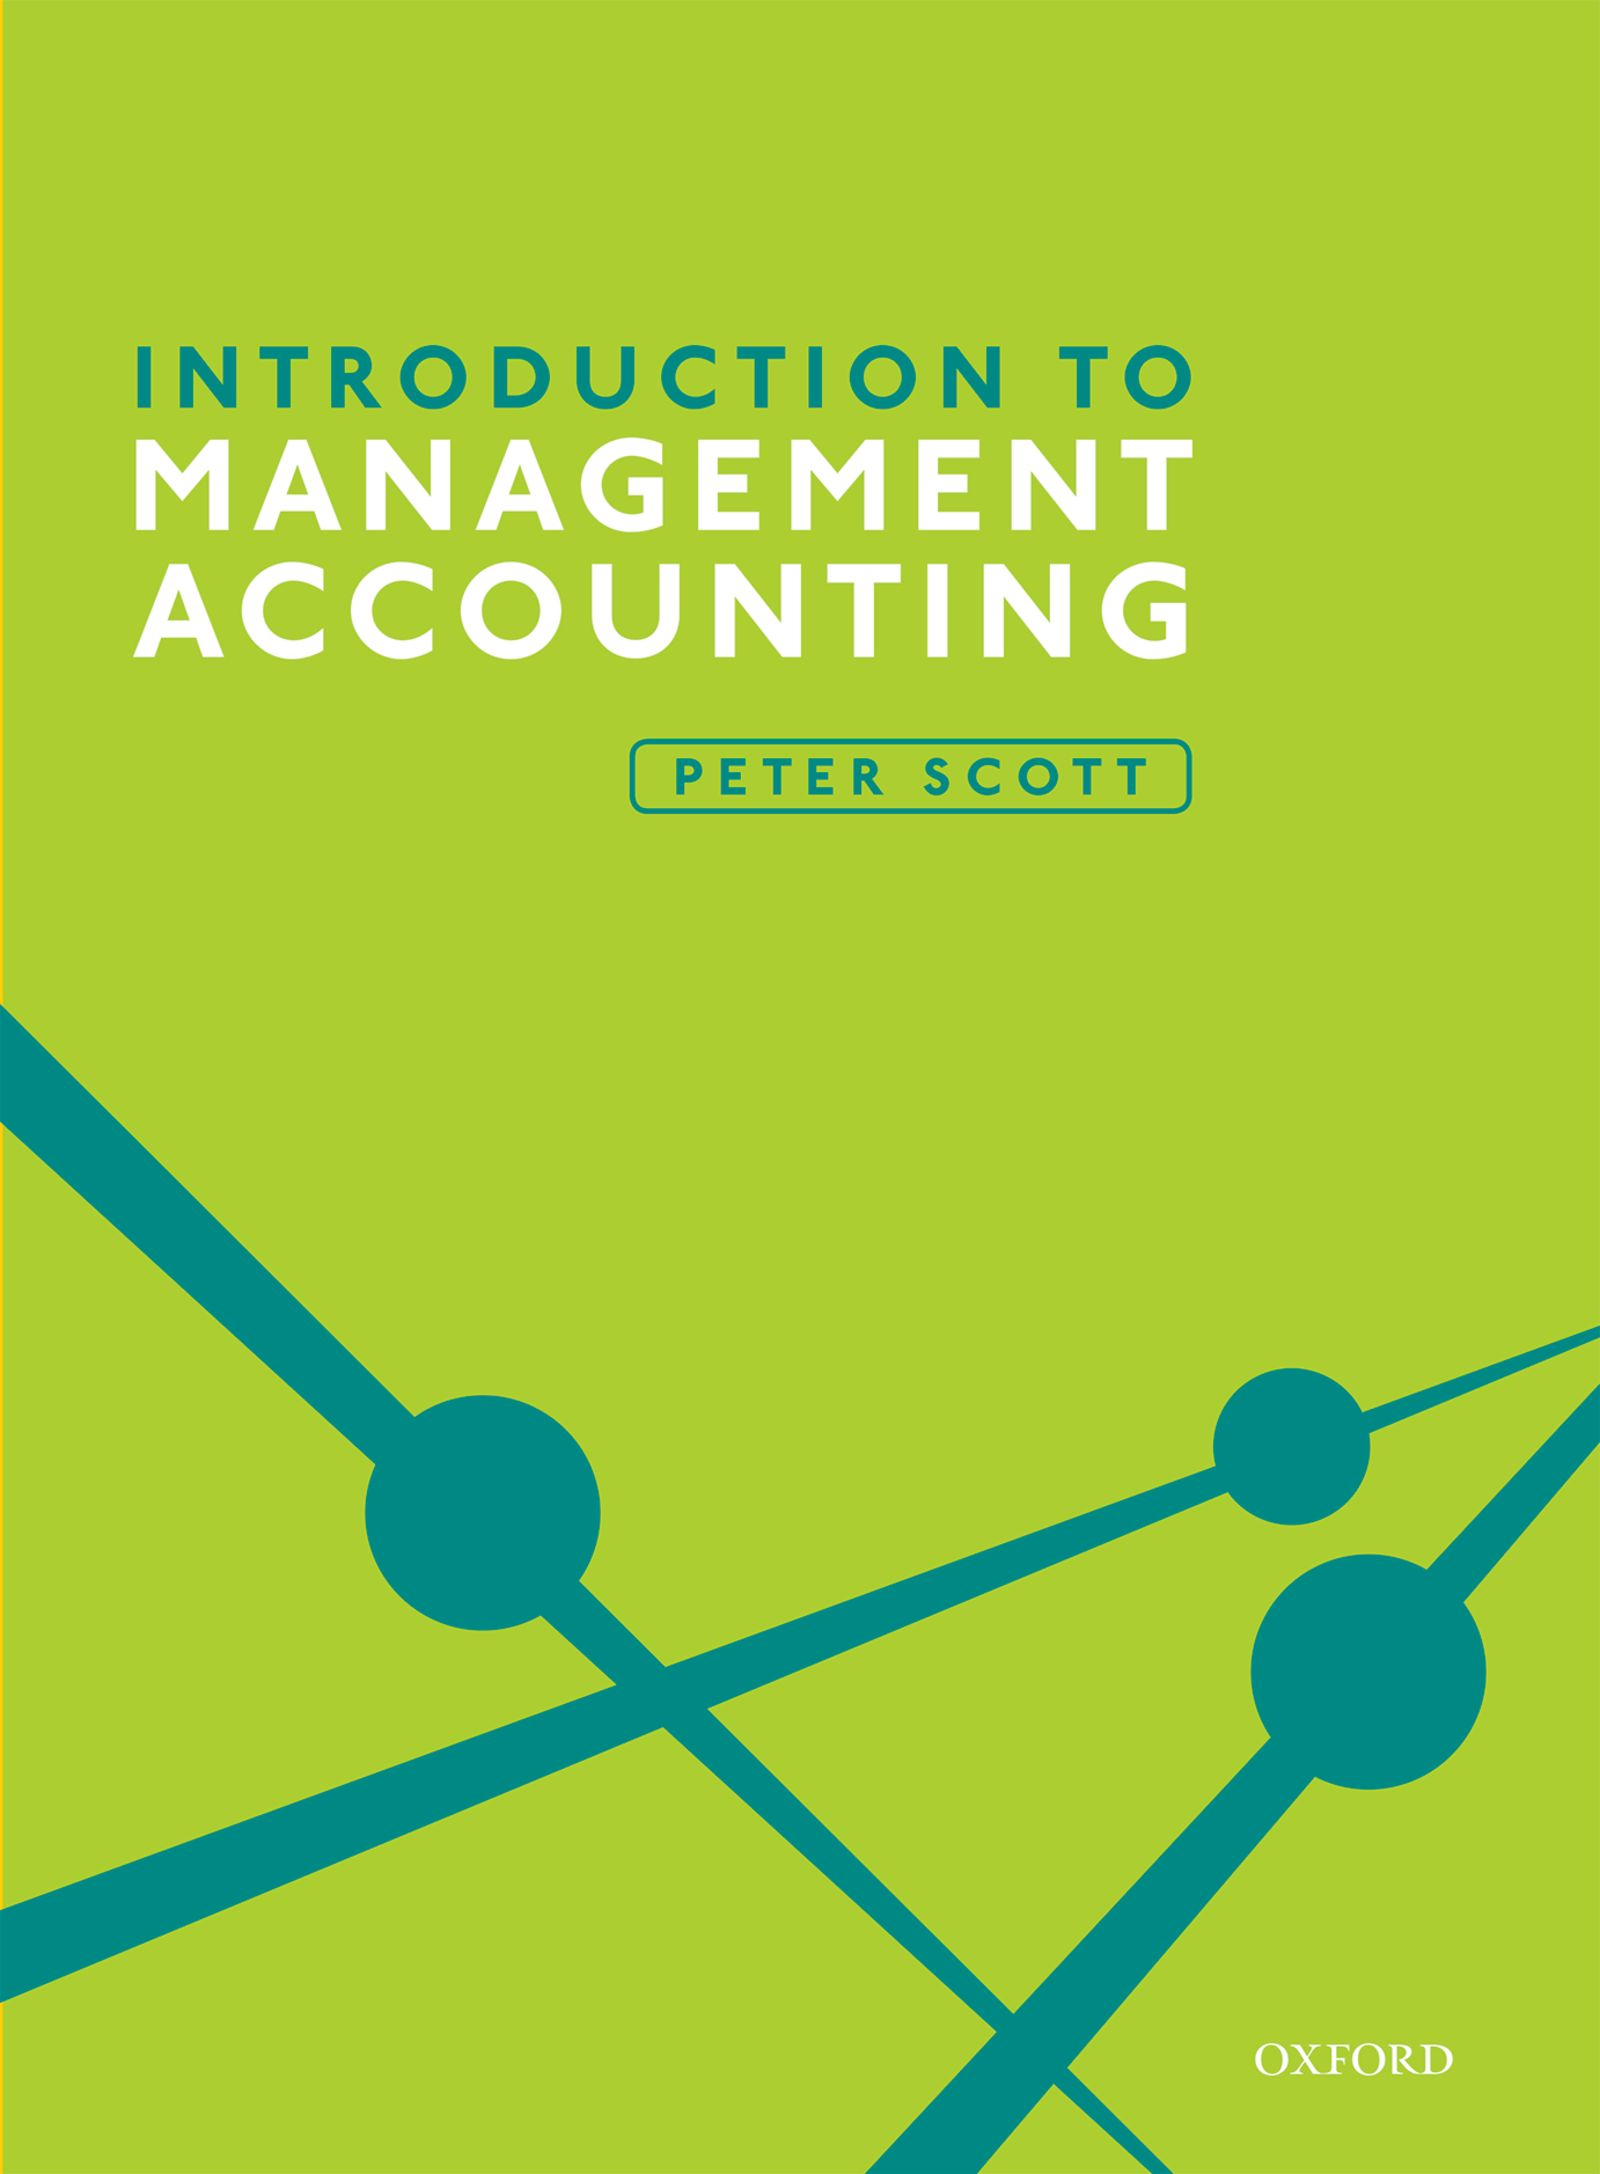 Introduction to Management Accounting Lecturer Resources